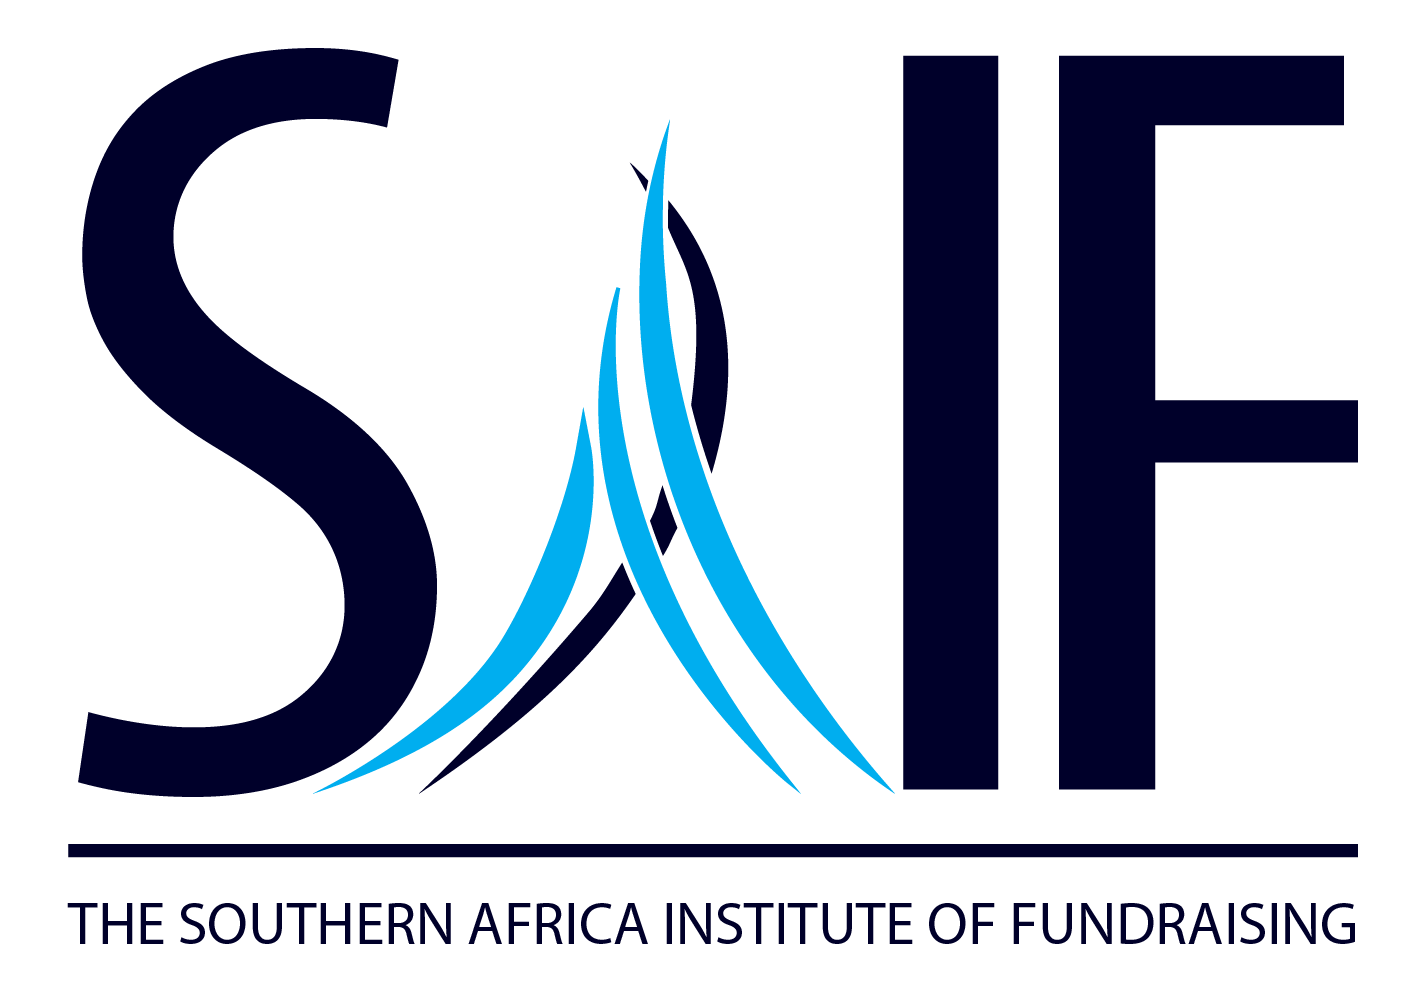 The Southern Africa Institute of Fundraising